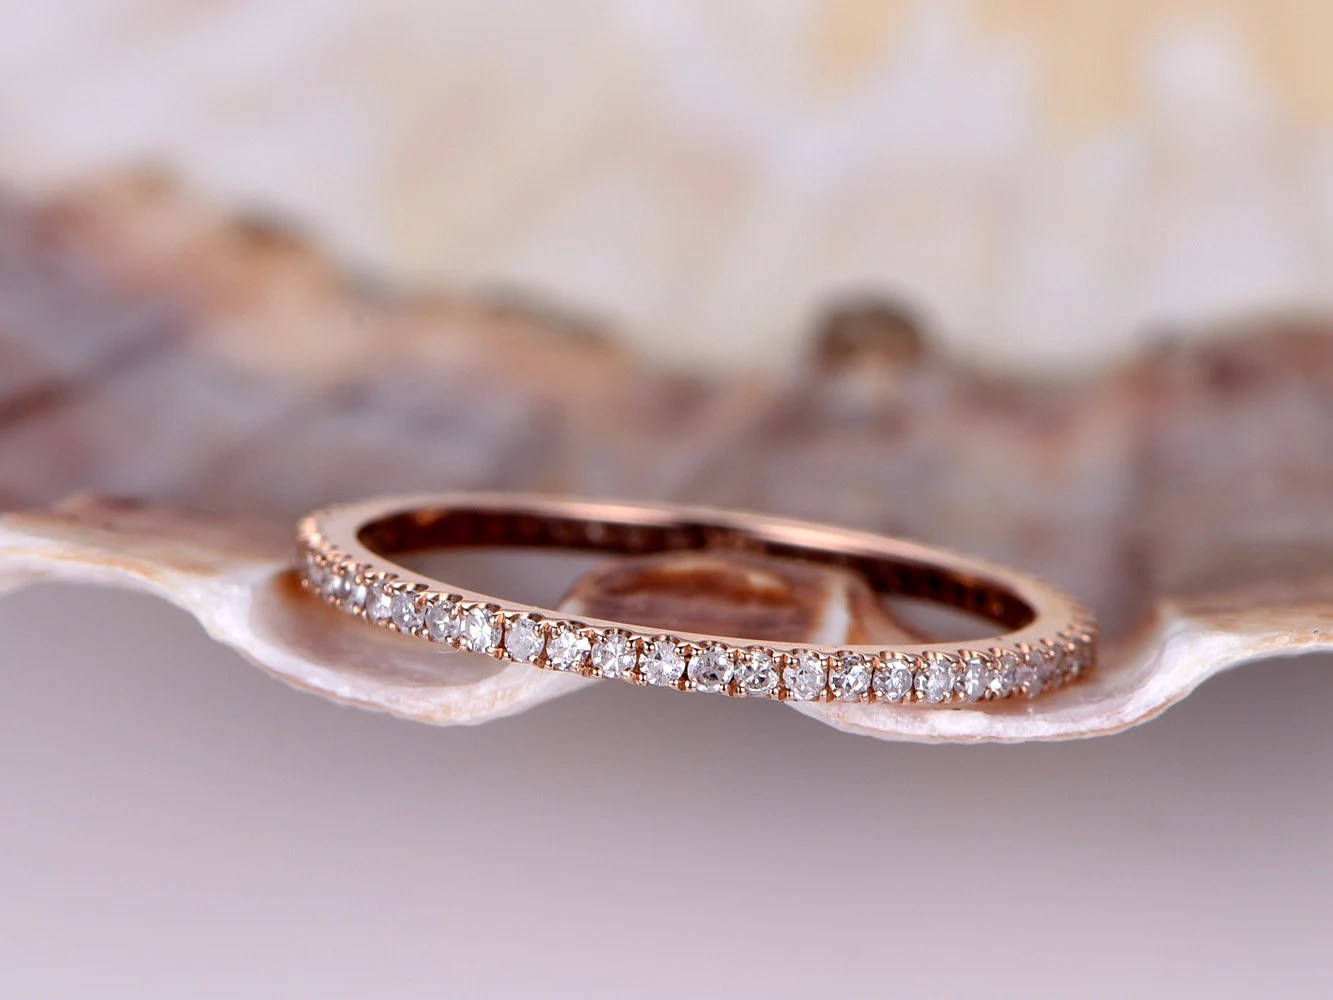 micro pave band micro pave wedding band Diamond wedding band Petite French micro pave band solid 14k rose gold FULL eternity ring engagement ring stack matching band thin band